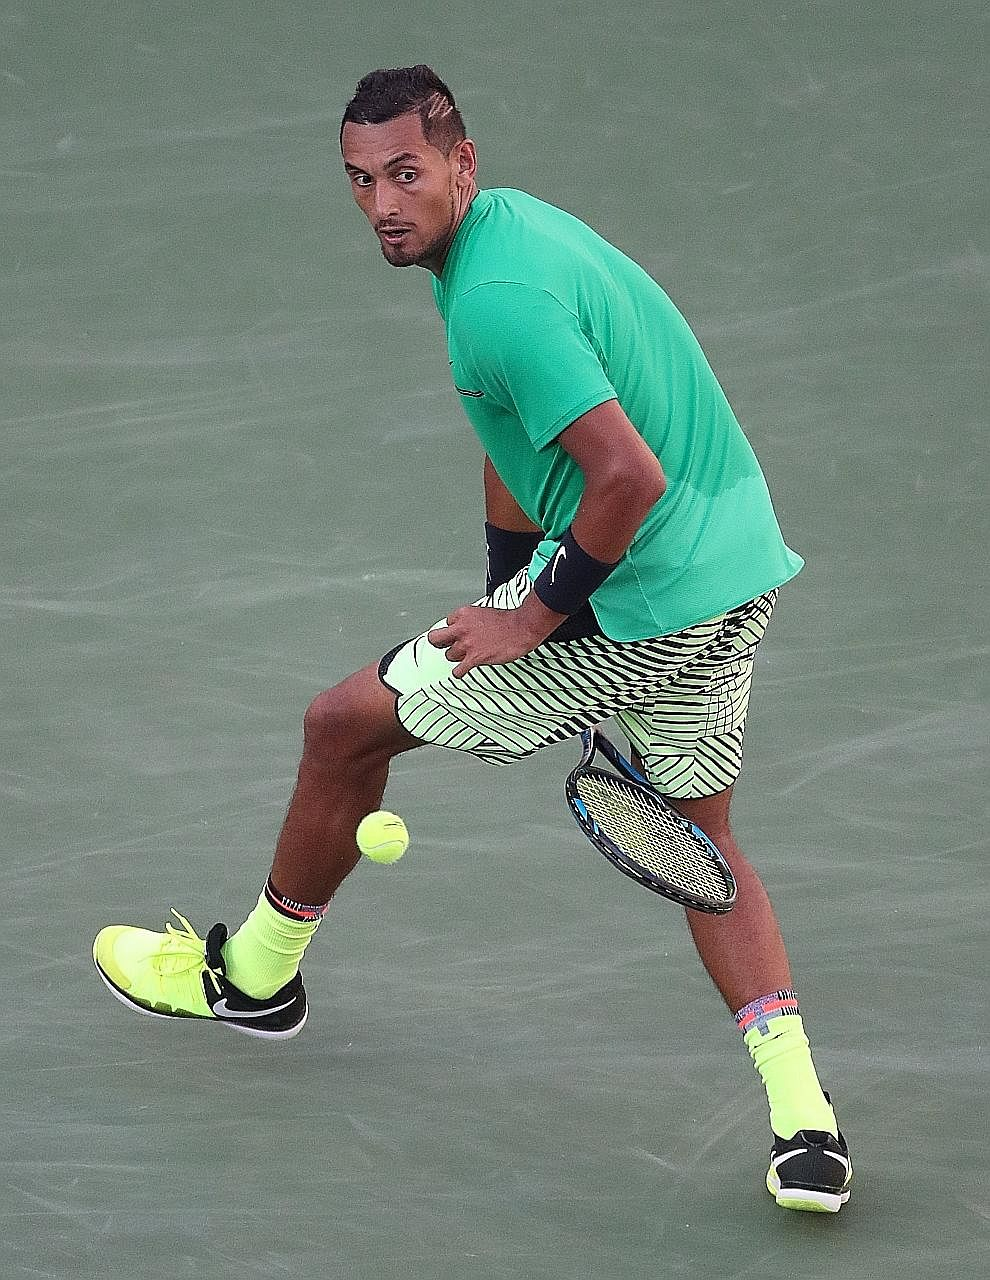 """Nick Kyrgios hitting a """"tweener"""", or a return between his legs, on the way to a 6-4, 7-6 (7-3) win against Novak Djokovic at the Indian Wells Masters on Wednesday. The Serb was bidding for a fourth straight title in the Californian desert, but fell t"""